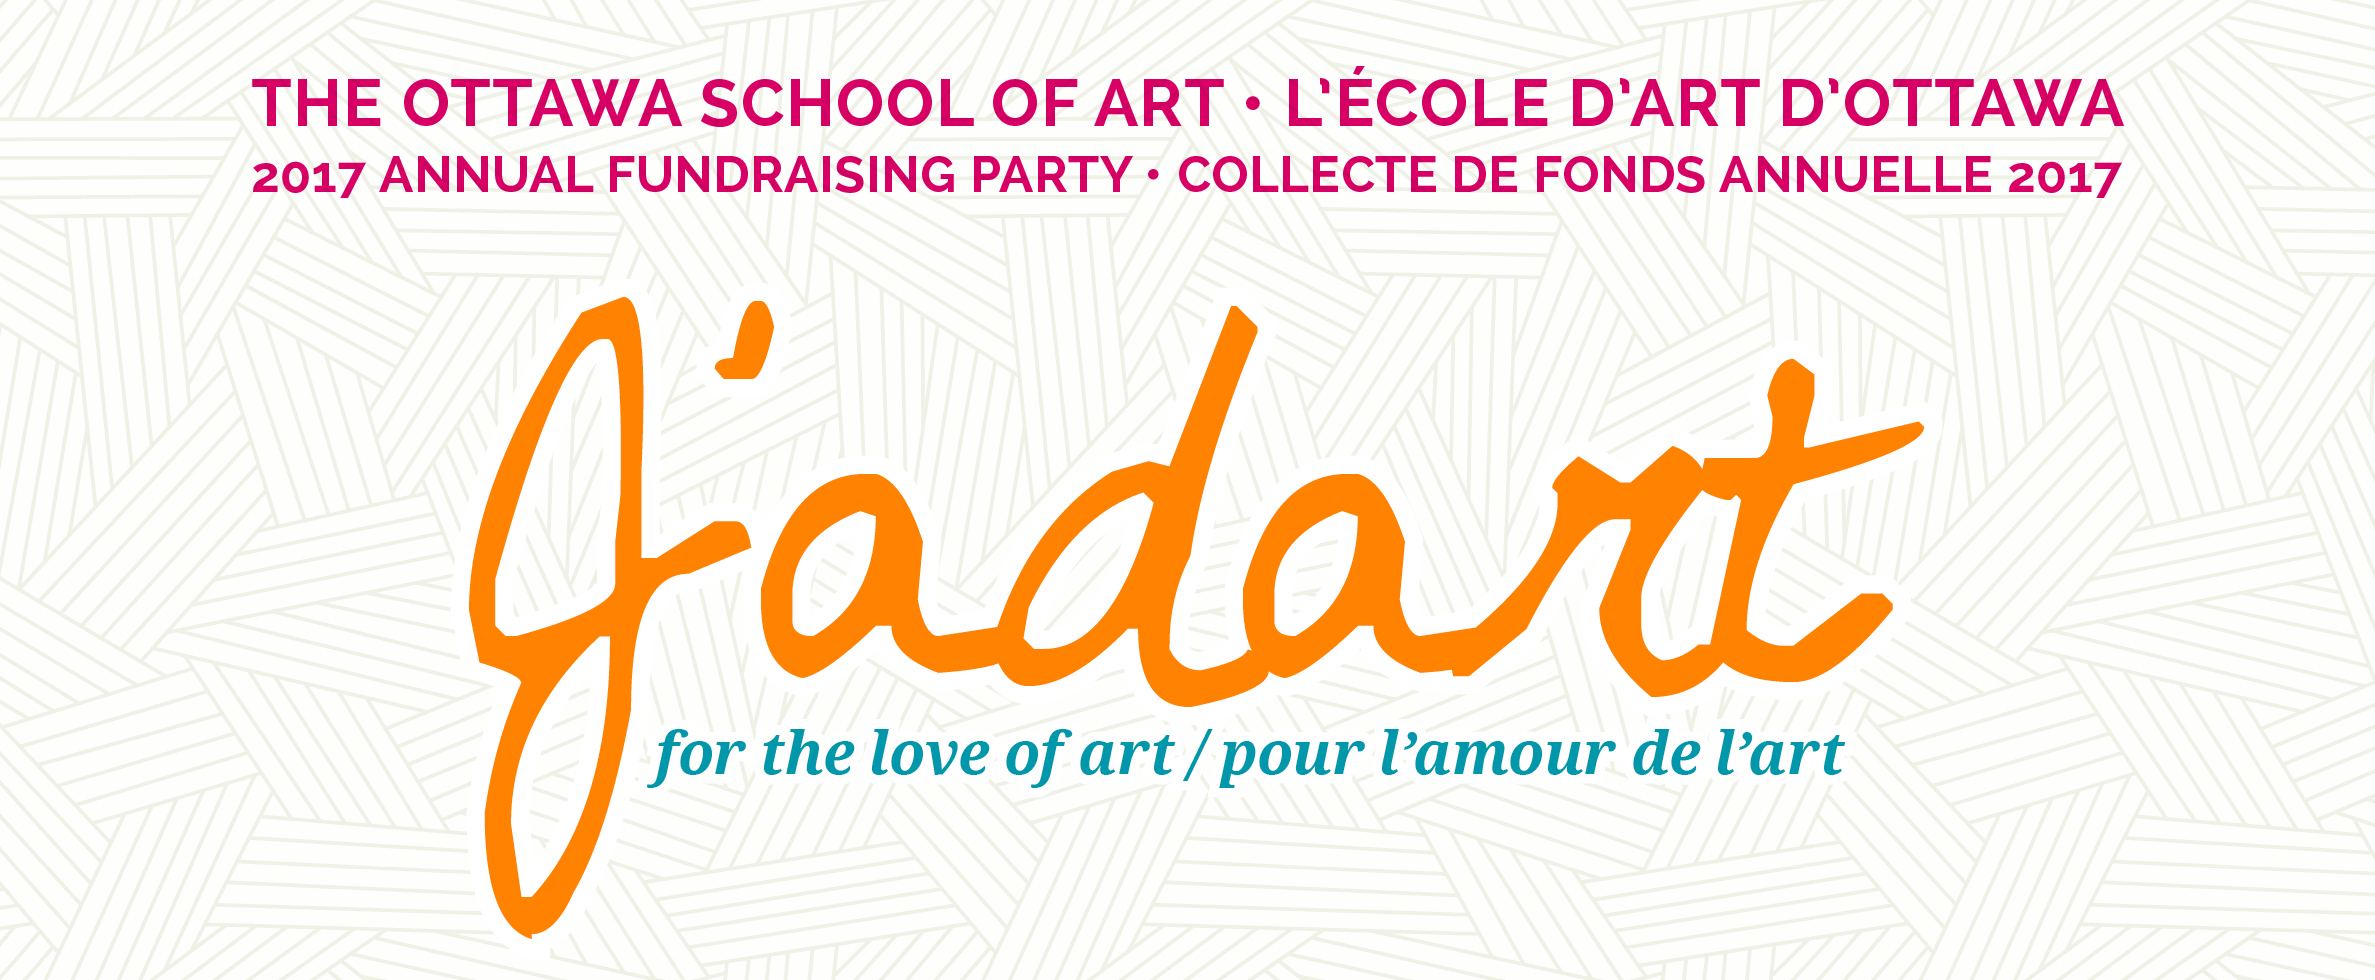 Exceptionnel J'adart, for the love or art! | Ottawa School of Art / École d'Art  PS69